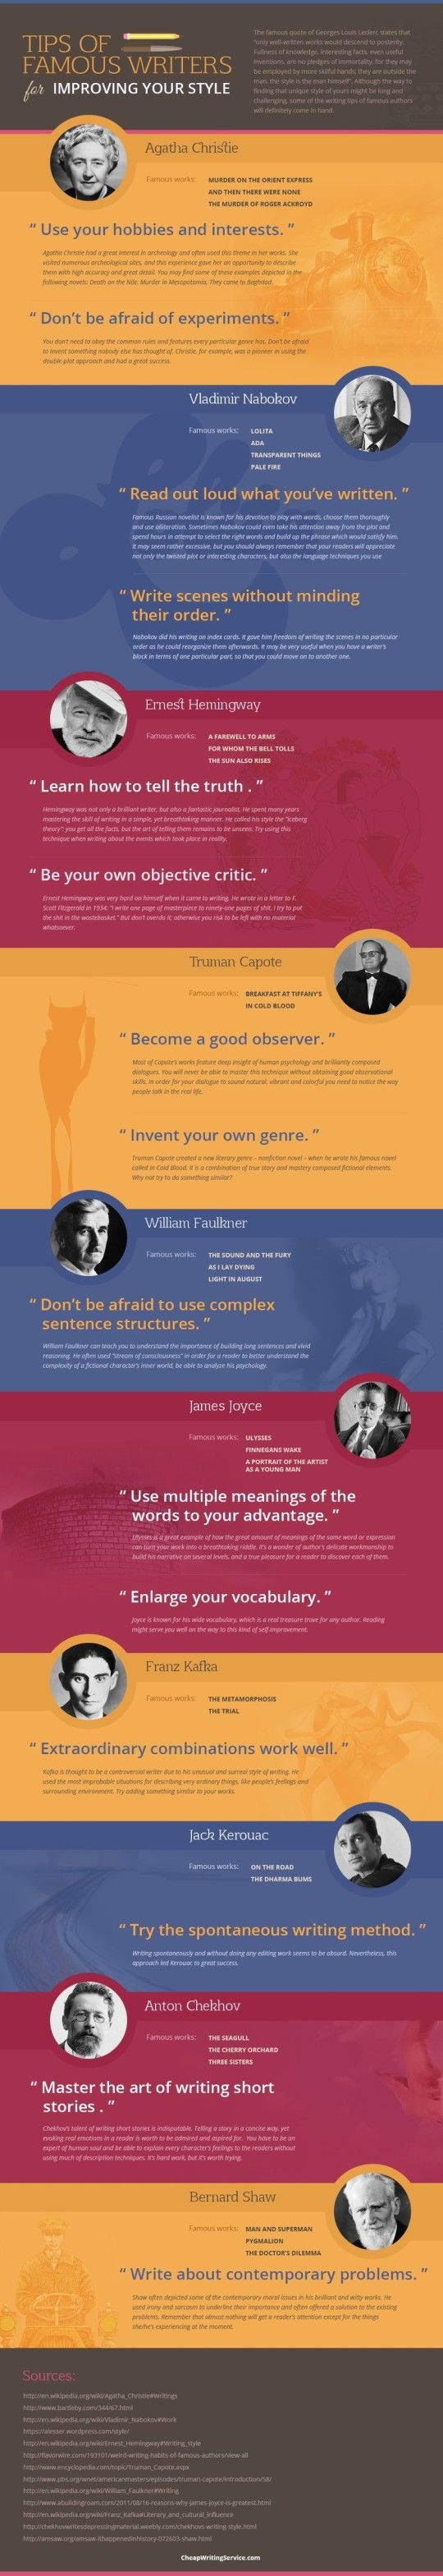 #Infographic Tips from famous authors for improving your #writing style #NaNoWriMo